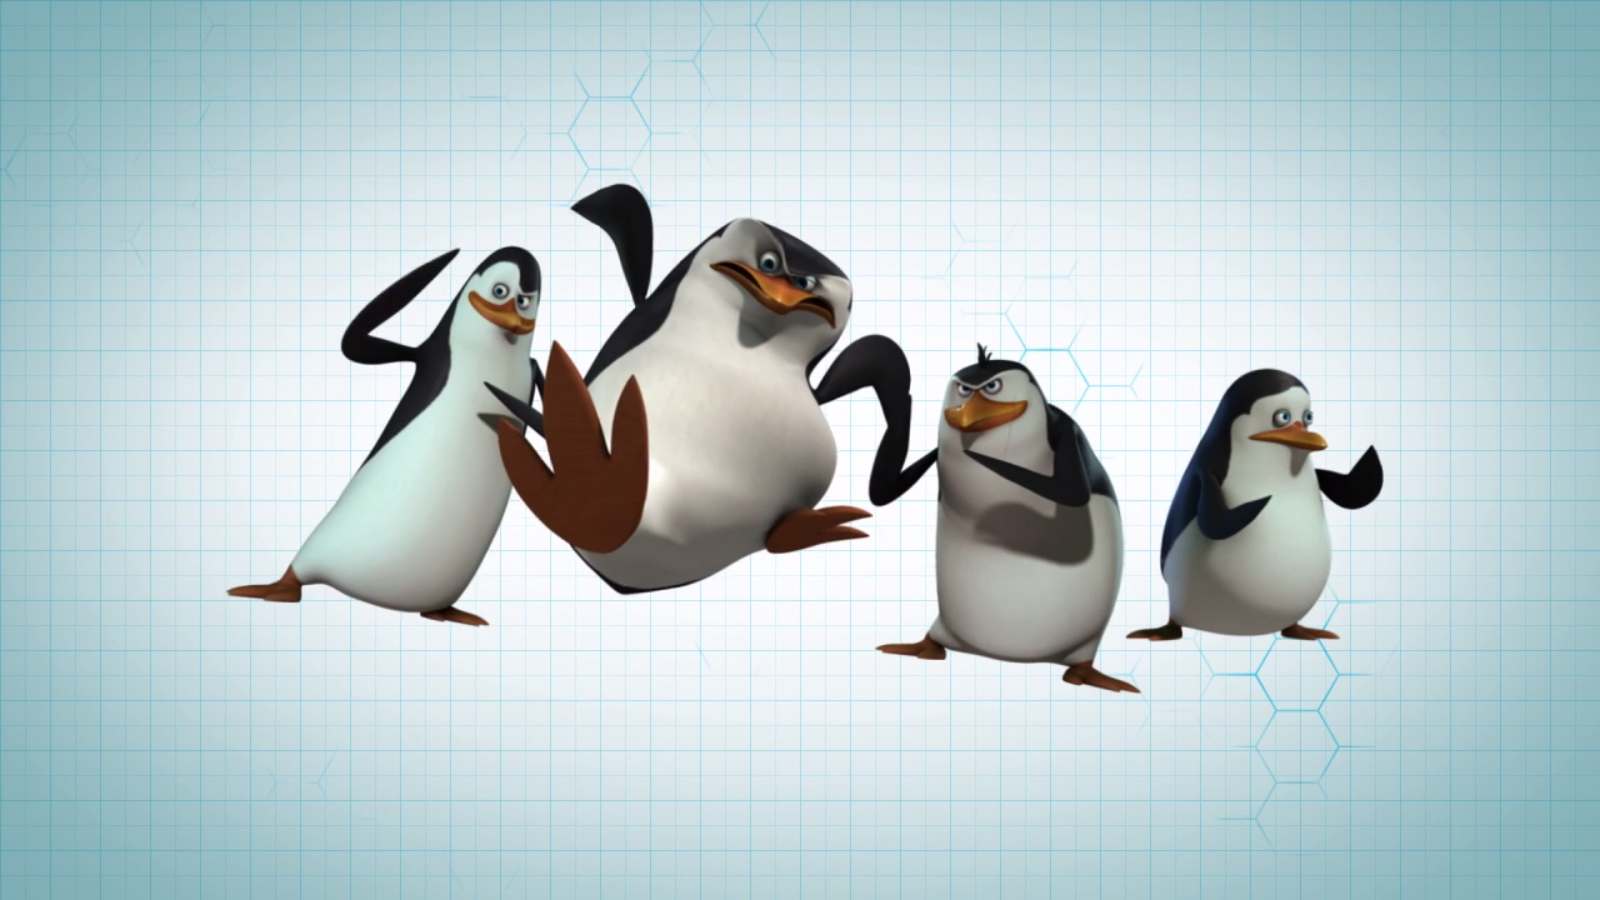 Penguins of madagascar wallpaper wallpapersafari - Madagascar wallpaper ...